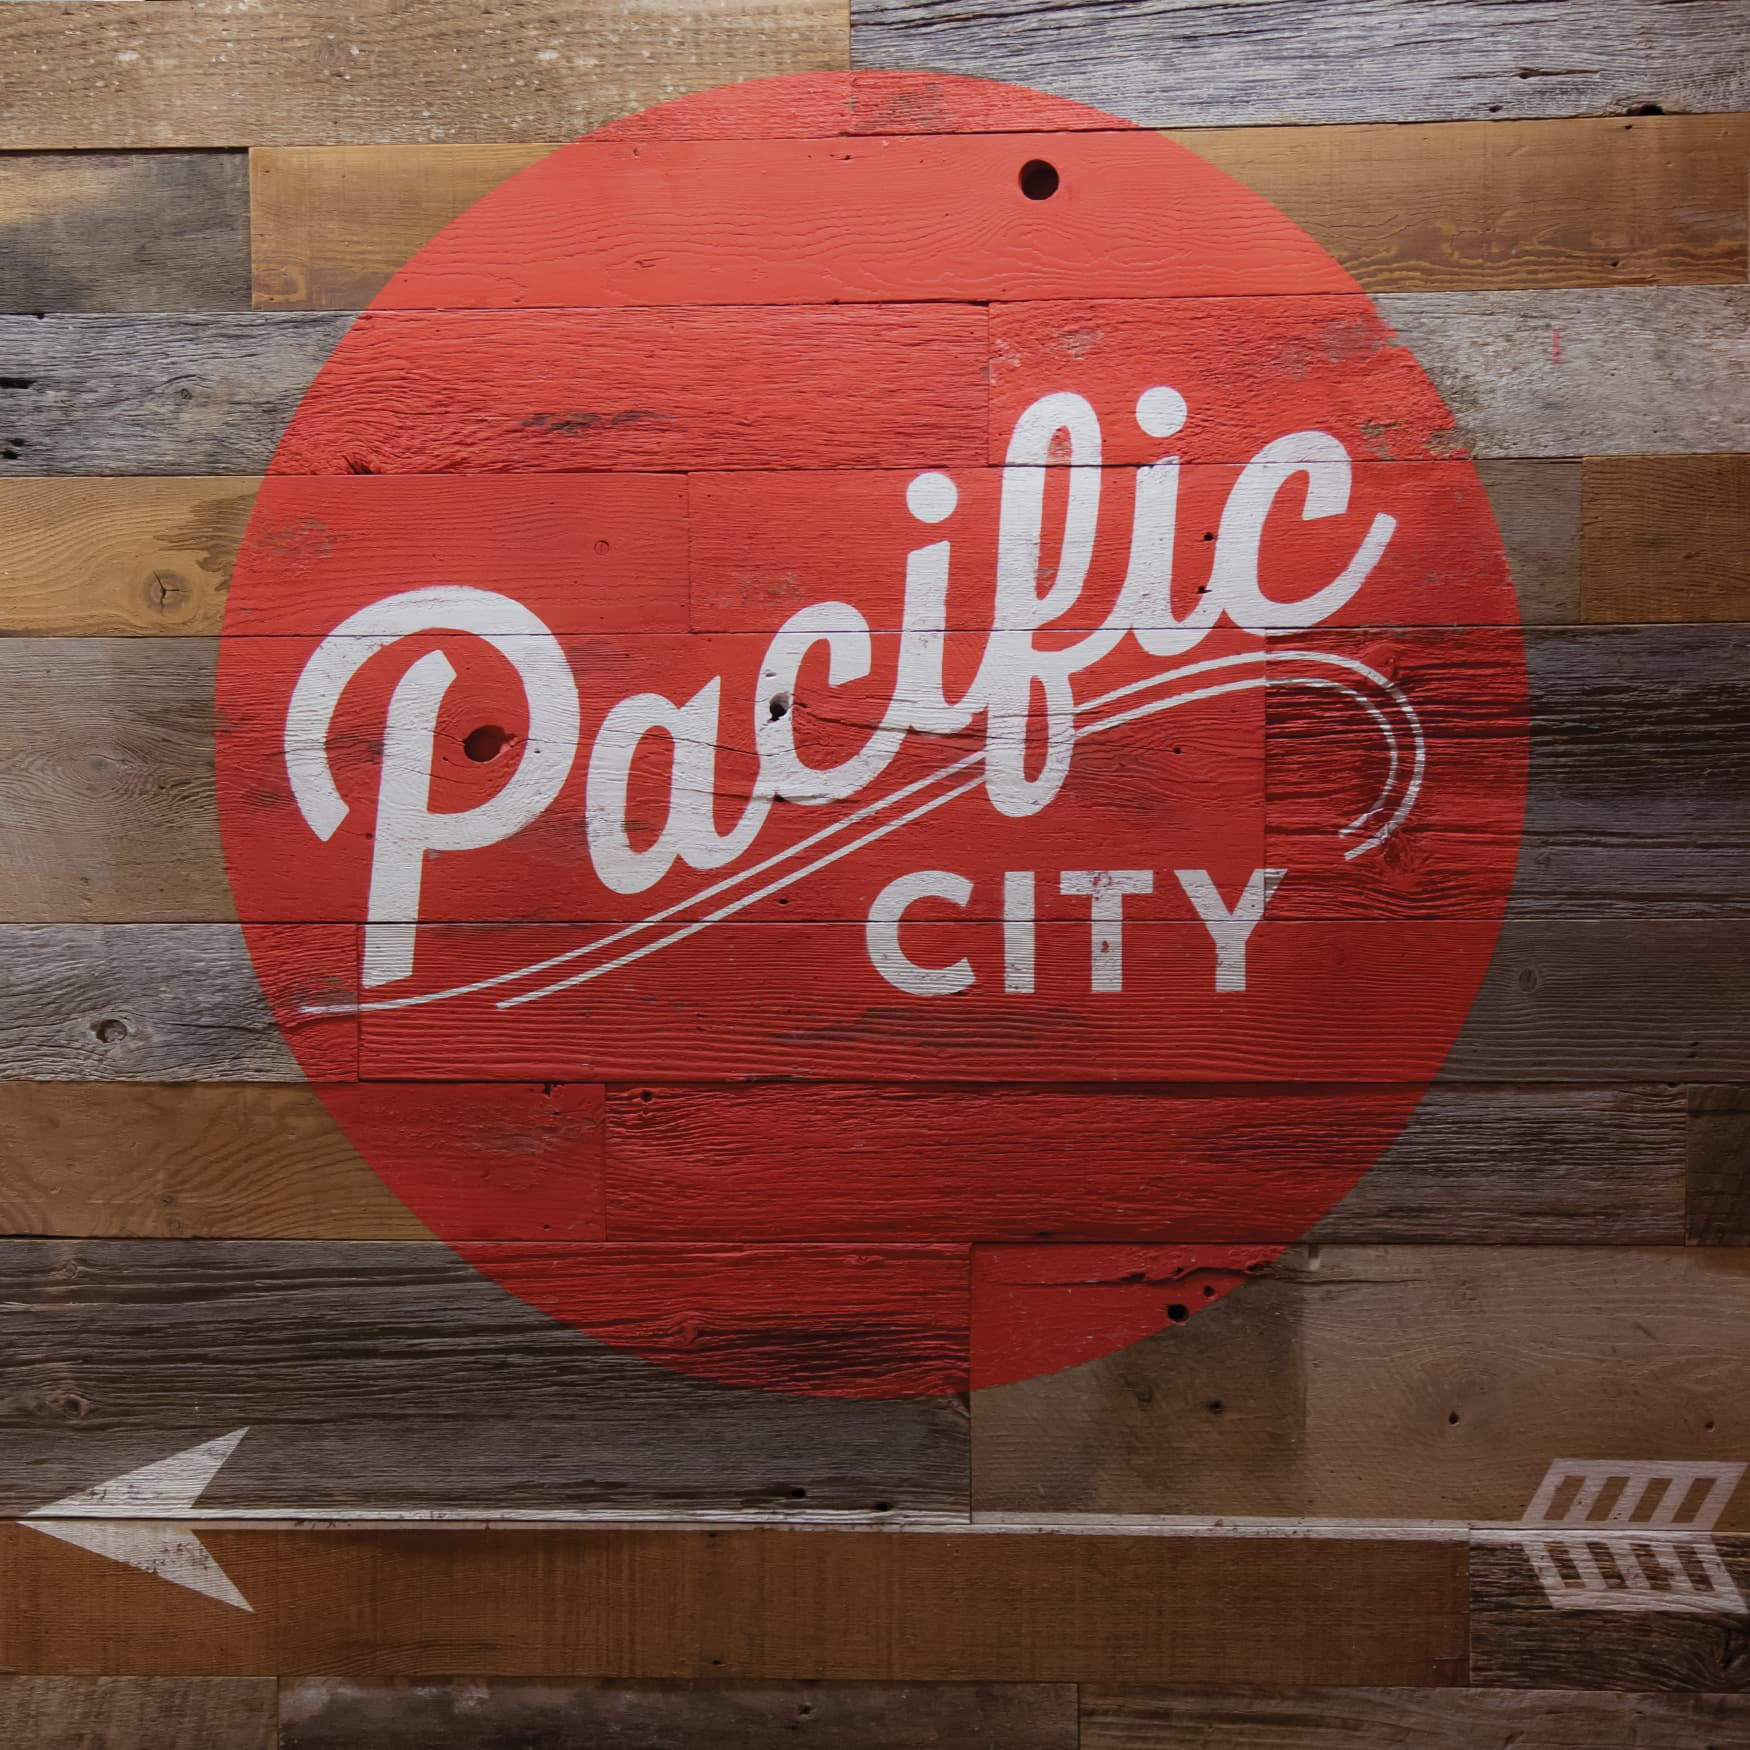 Pacific City waterfront retail project painted identity graphic